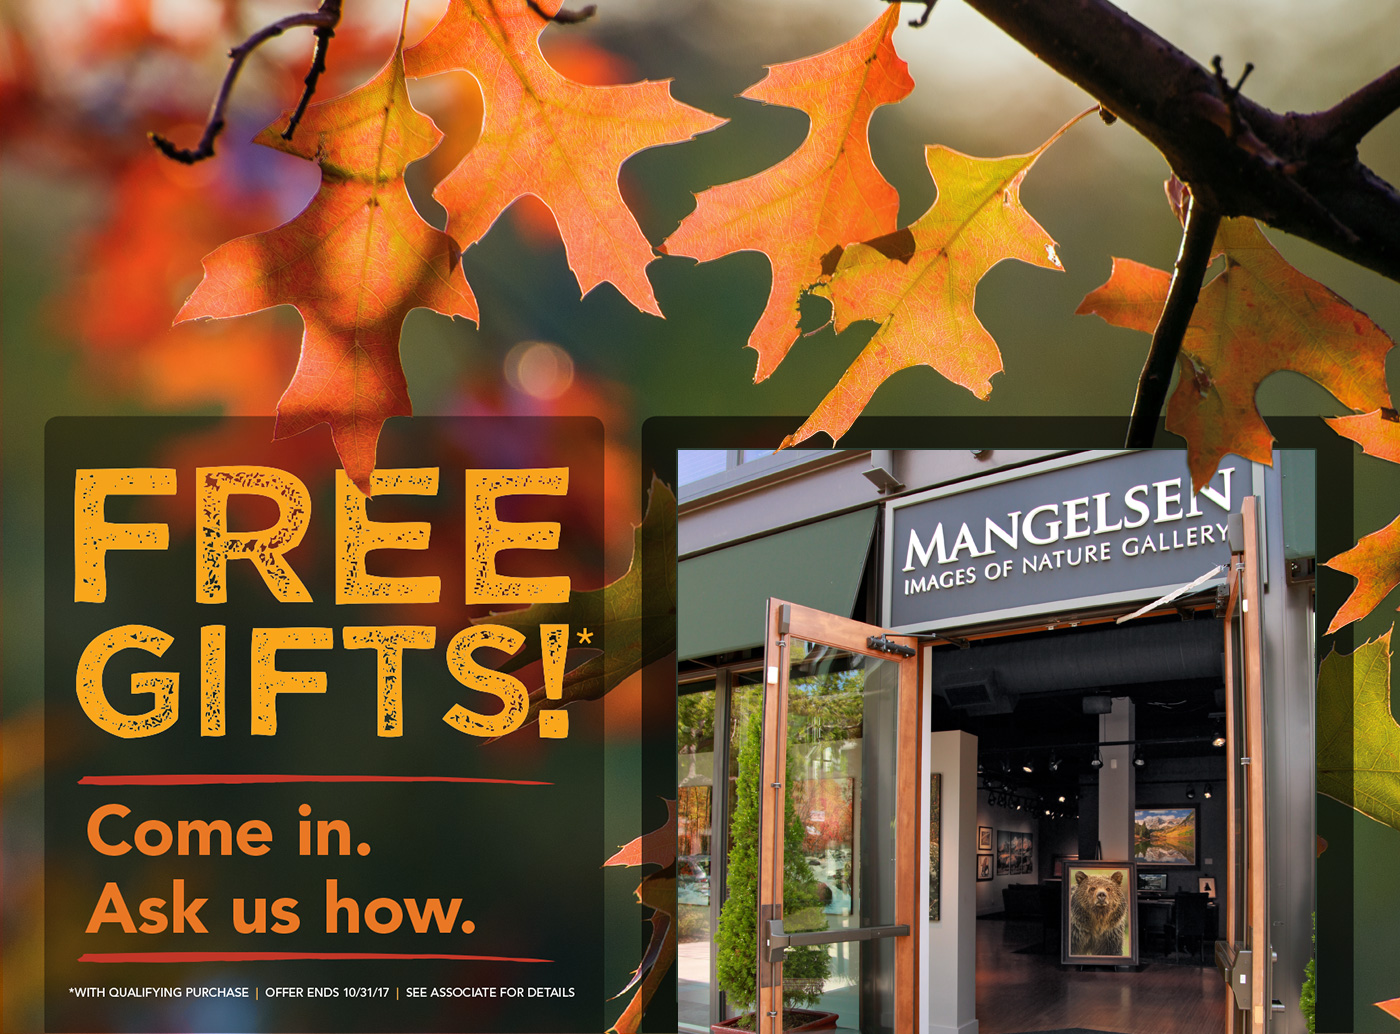 Visit a Mangeslen Images of Nature Gallery and ask an associate about more special offers, available only in our galleries.